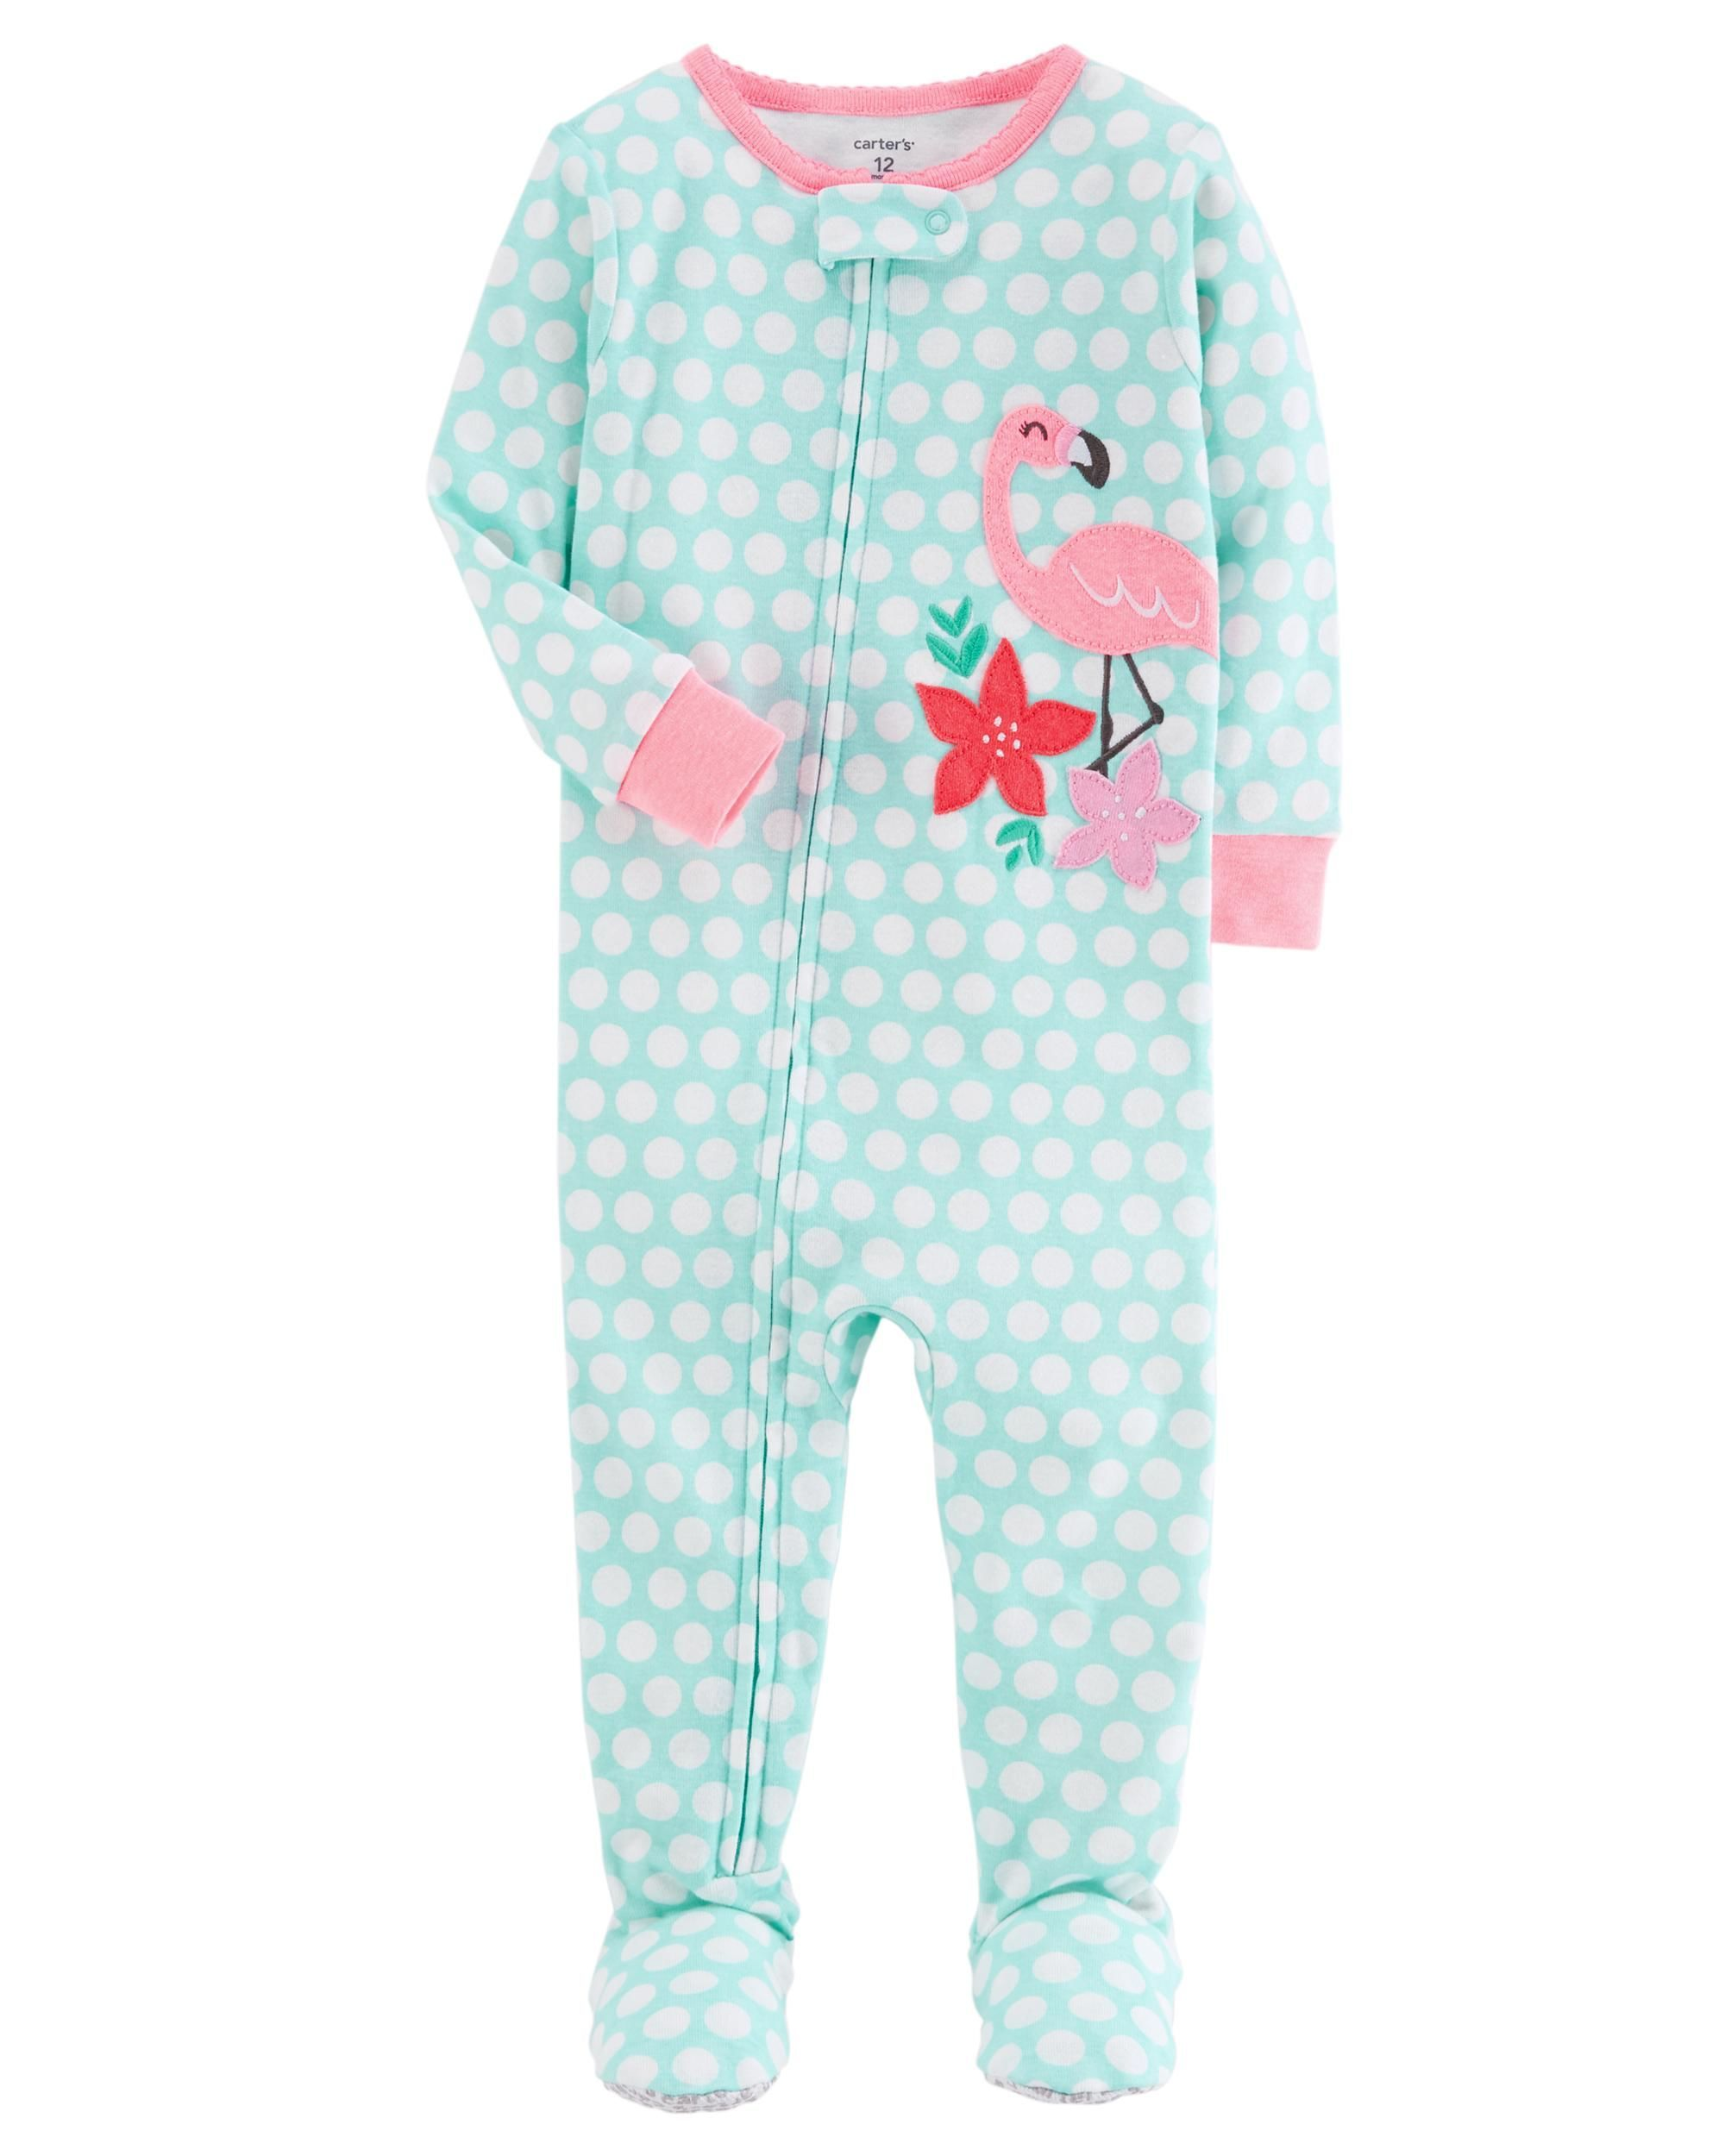 d0d7b4adfa10 1-Piece Neon Flamingo Snug Fit Cotton PJs